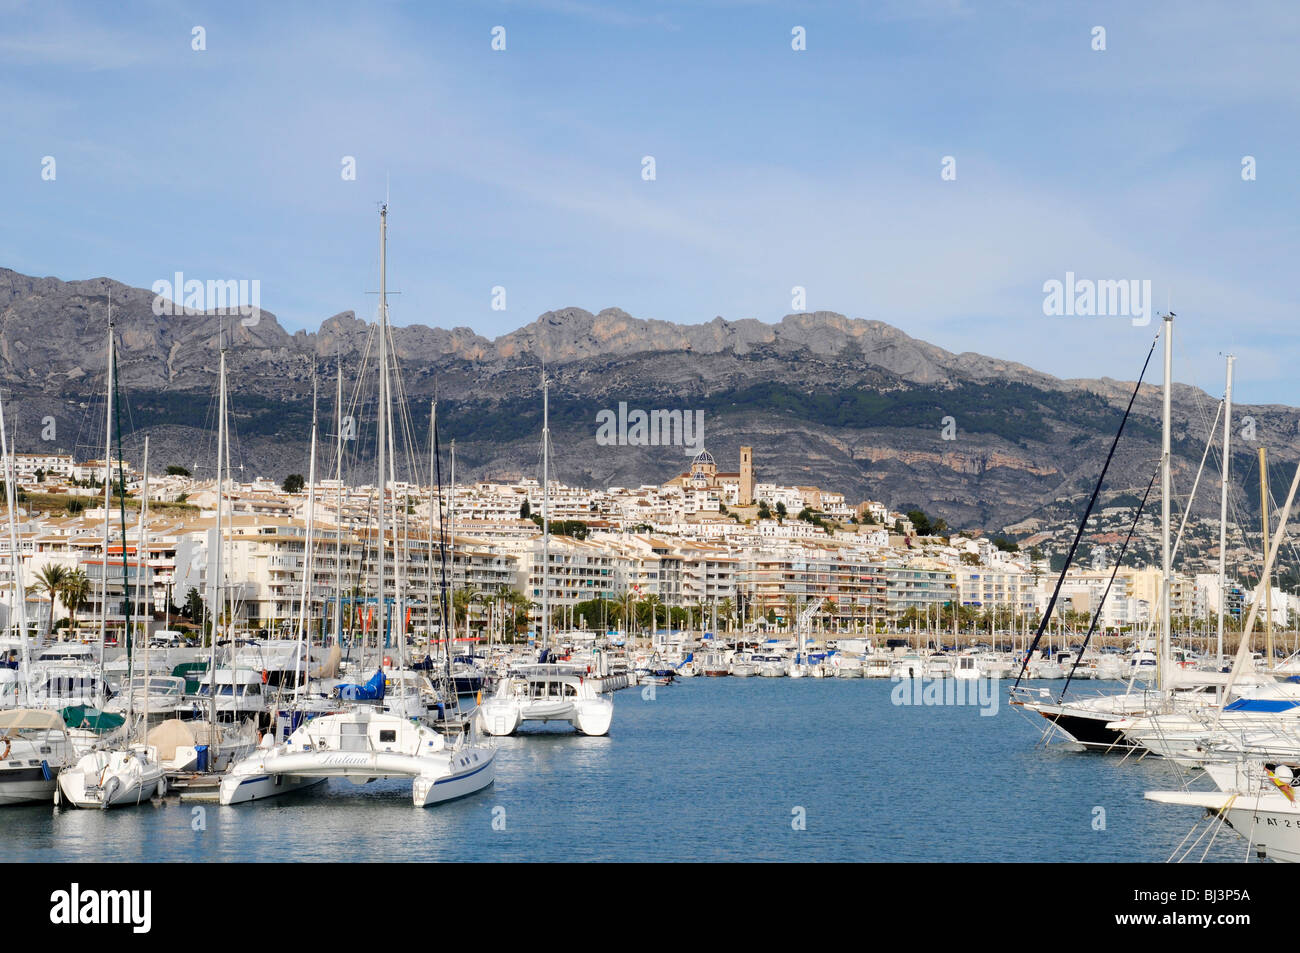 Catamaran, ships, marina, harbor, Altea, Costa Blanca, Alicante province, Spain, Europe - Stock Image